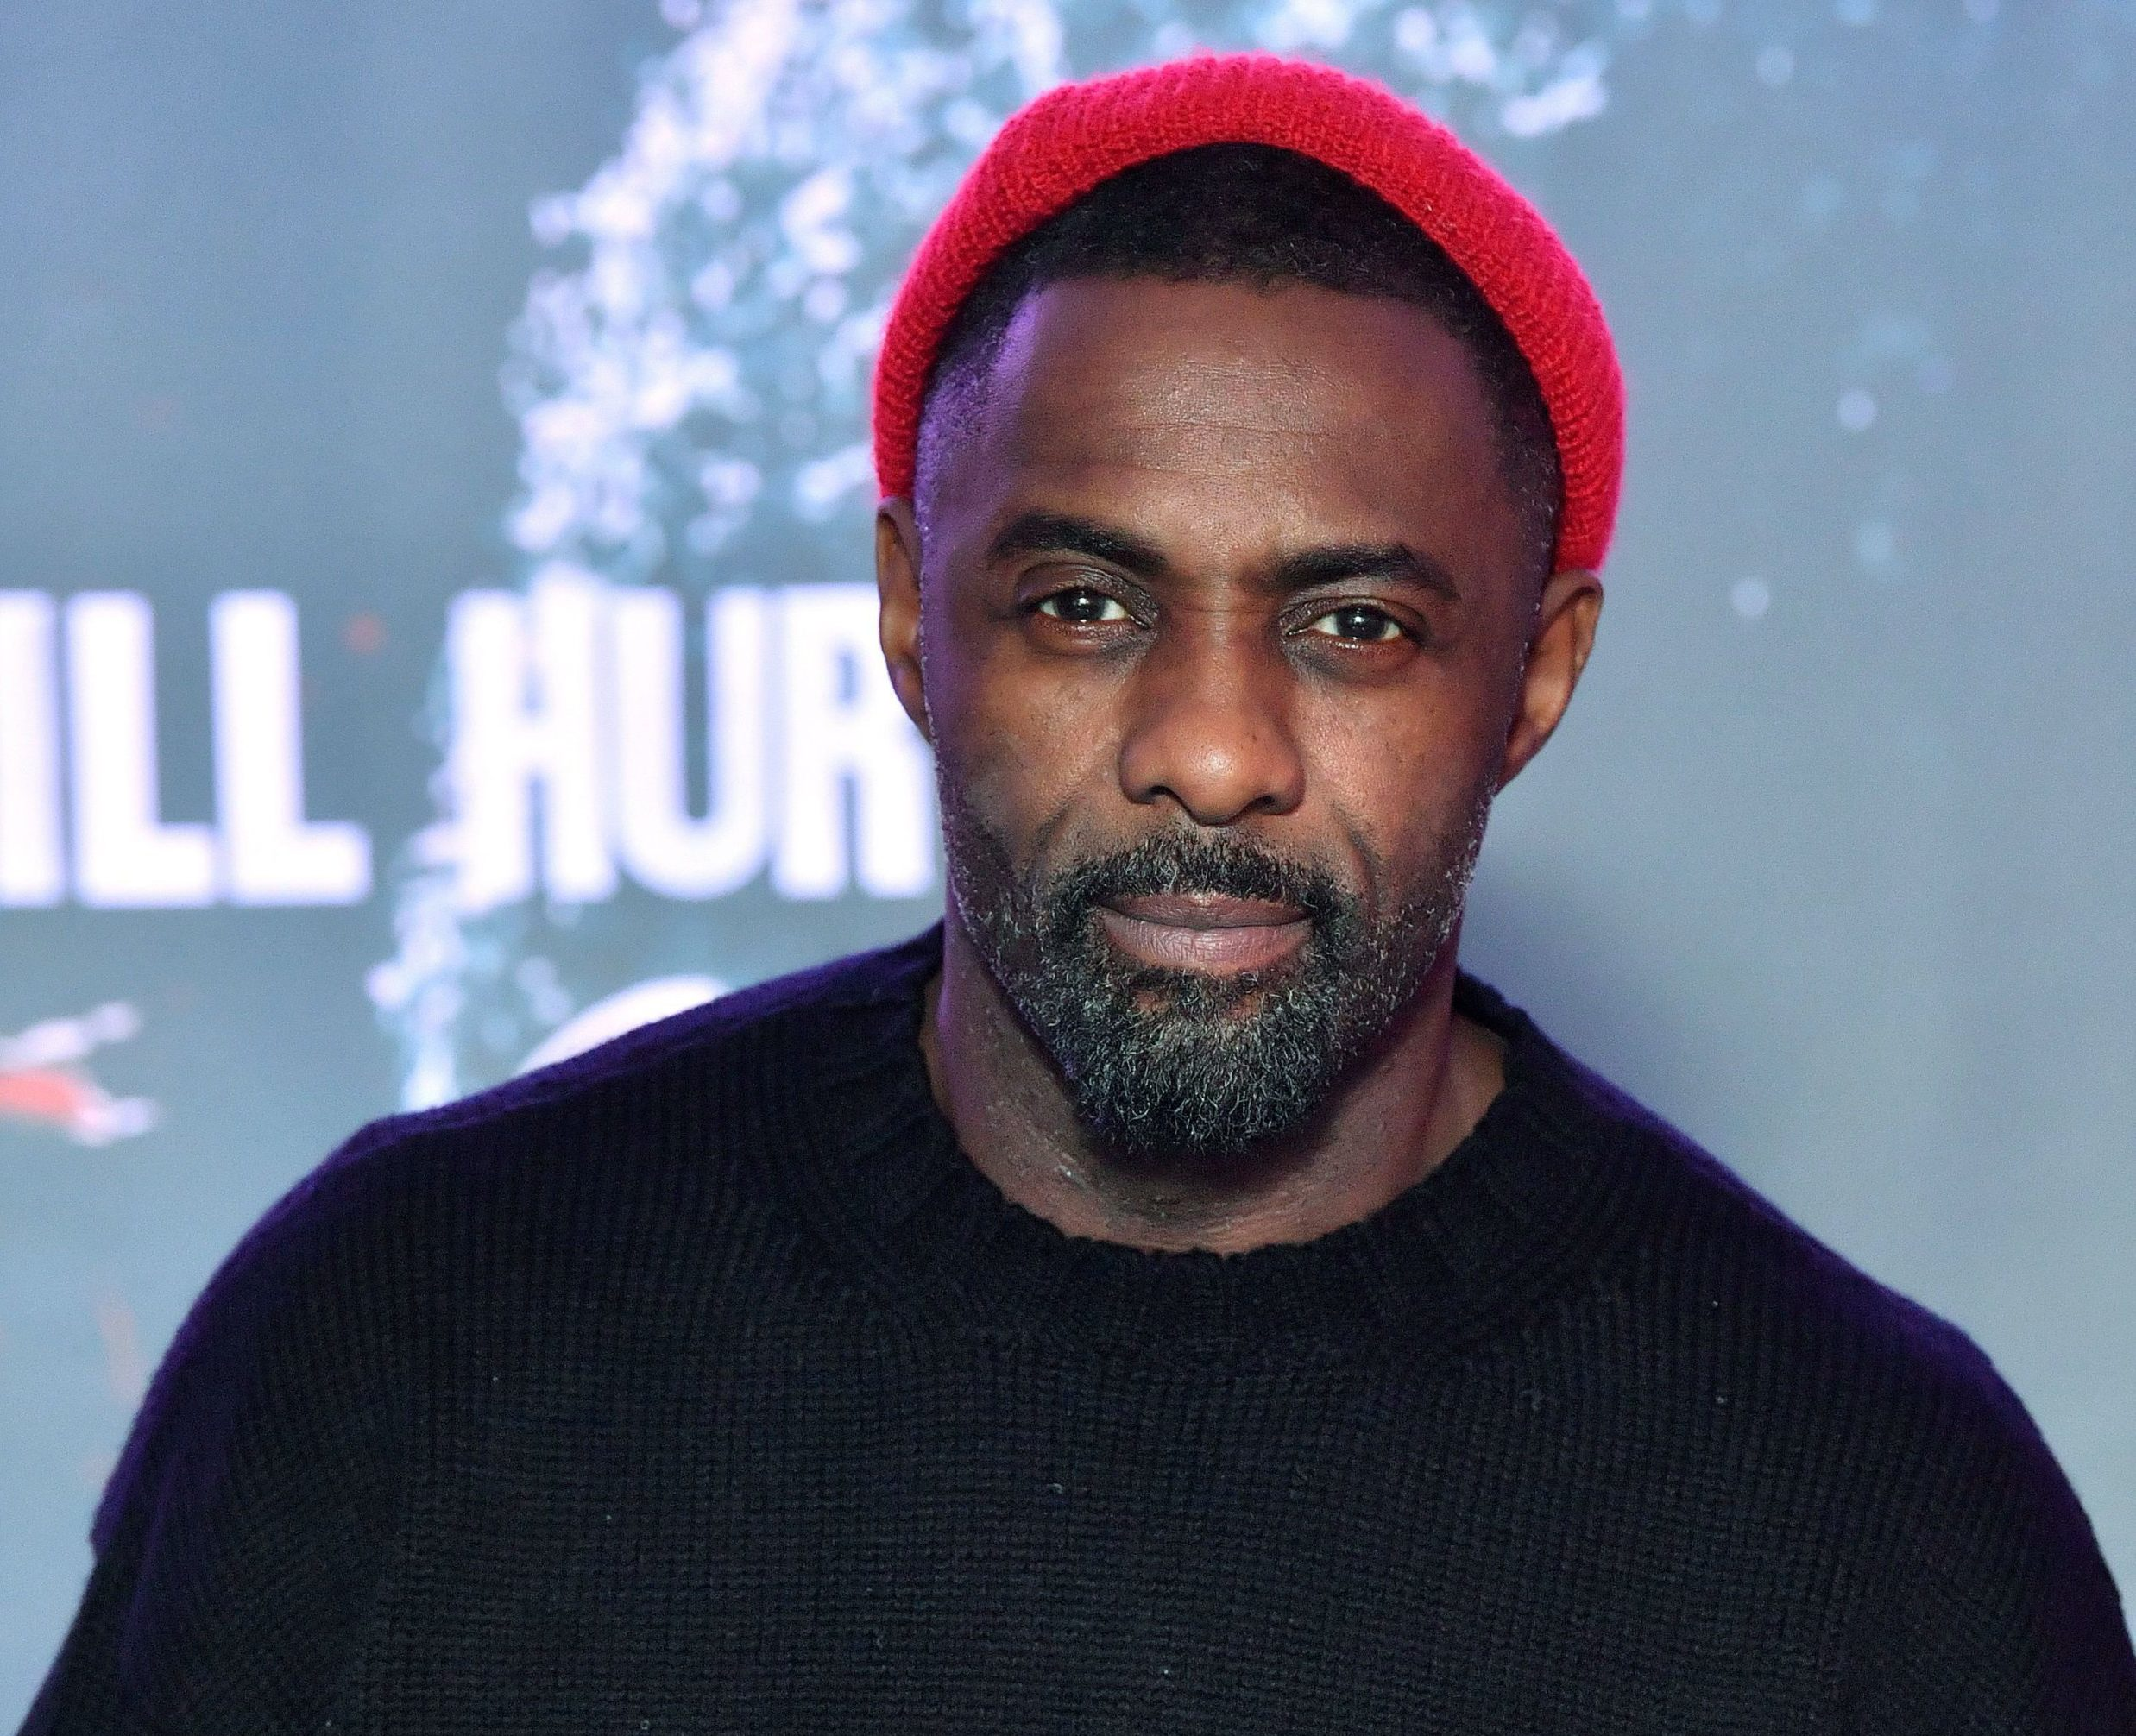 Mandatory Credit: Photo by Anthony Harvey/REX (10030381n) Idris Elba 'Luther Series 5' TV uncover photocall, London, UK - 11 Dec 2018